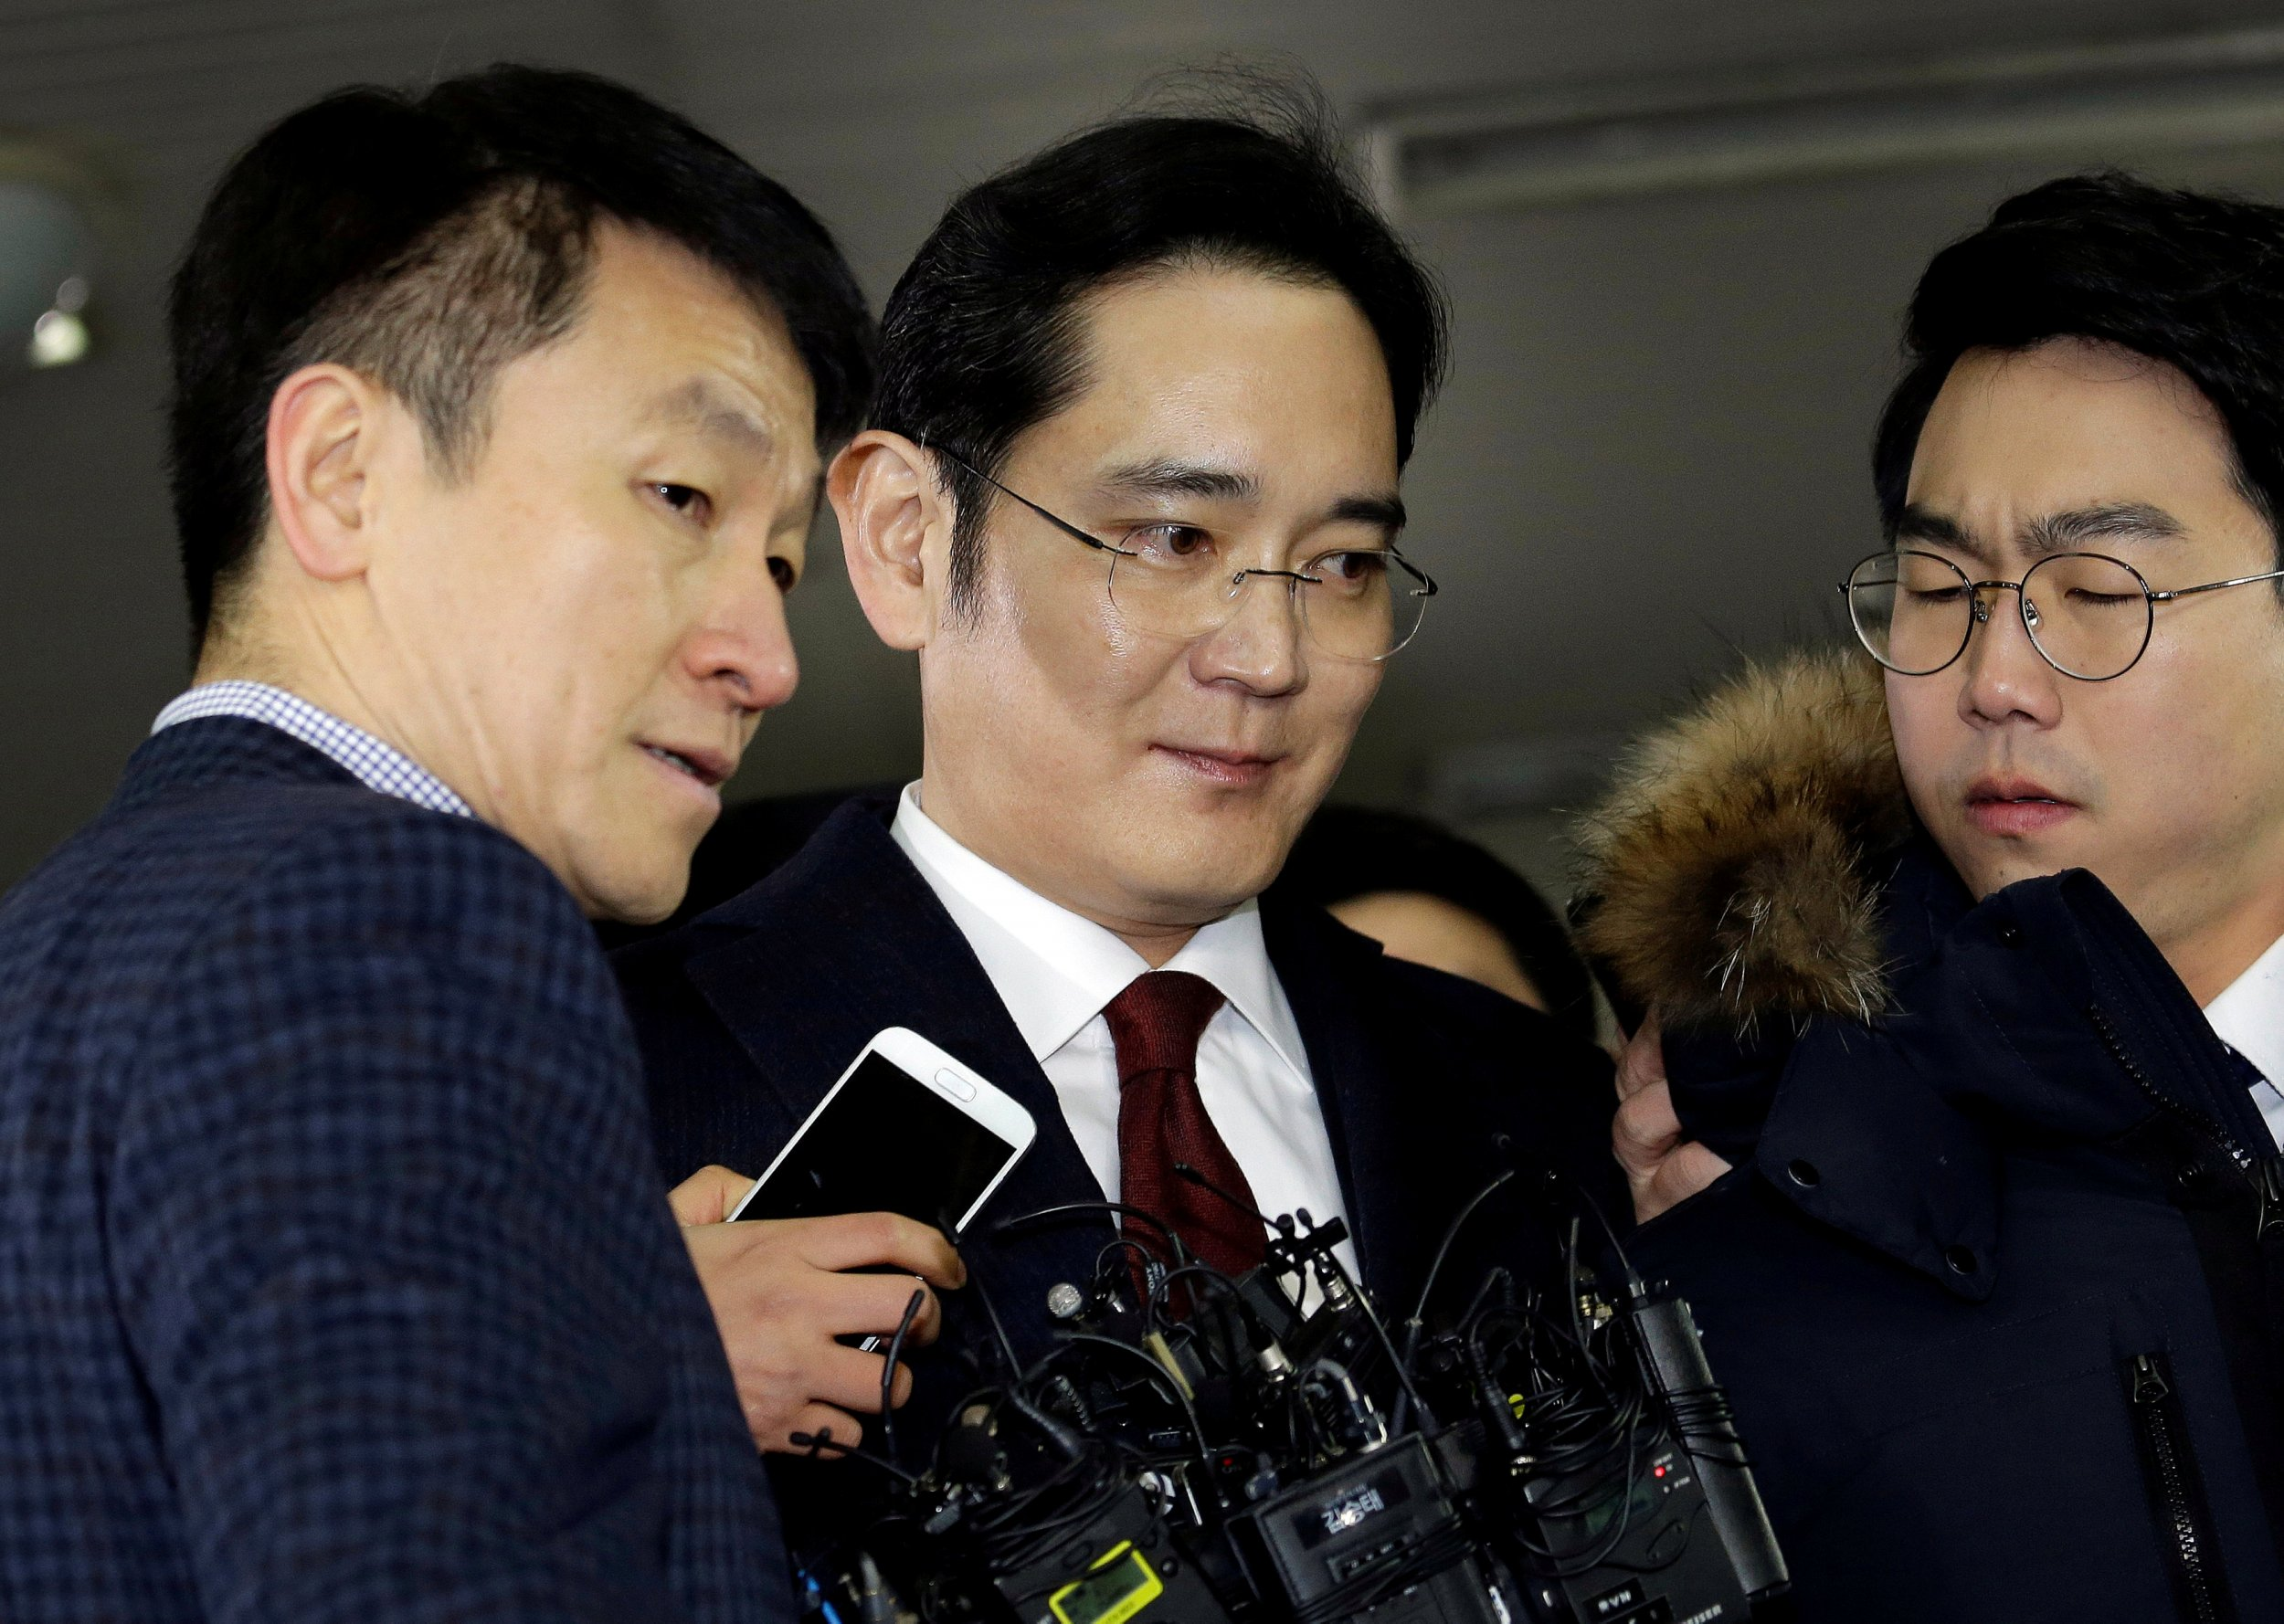 Samsung: Prosecutor's Decision to Charge CEO with Corruption Difficult to Understand